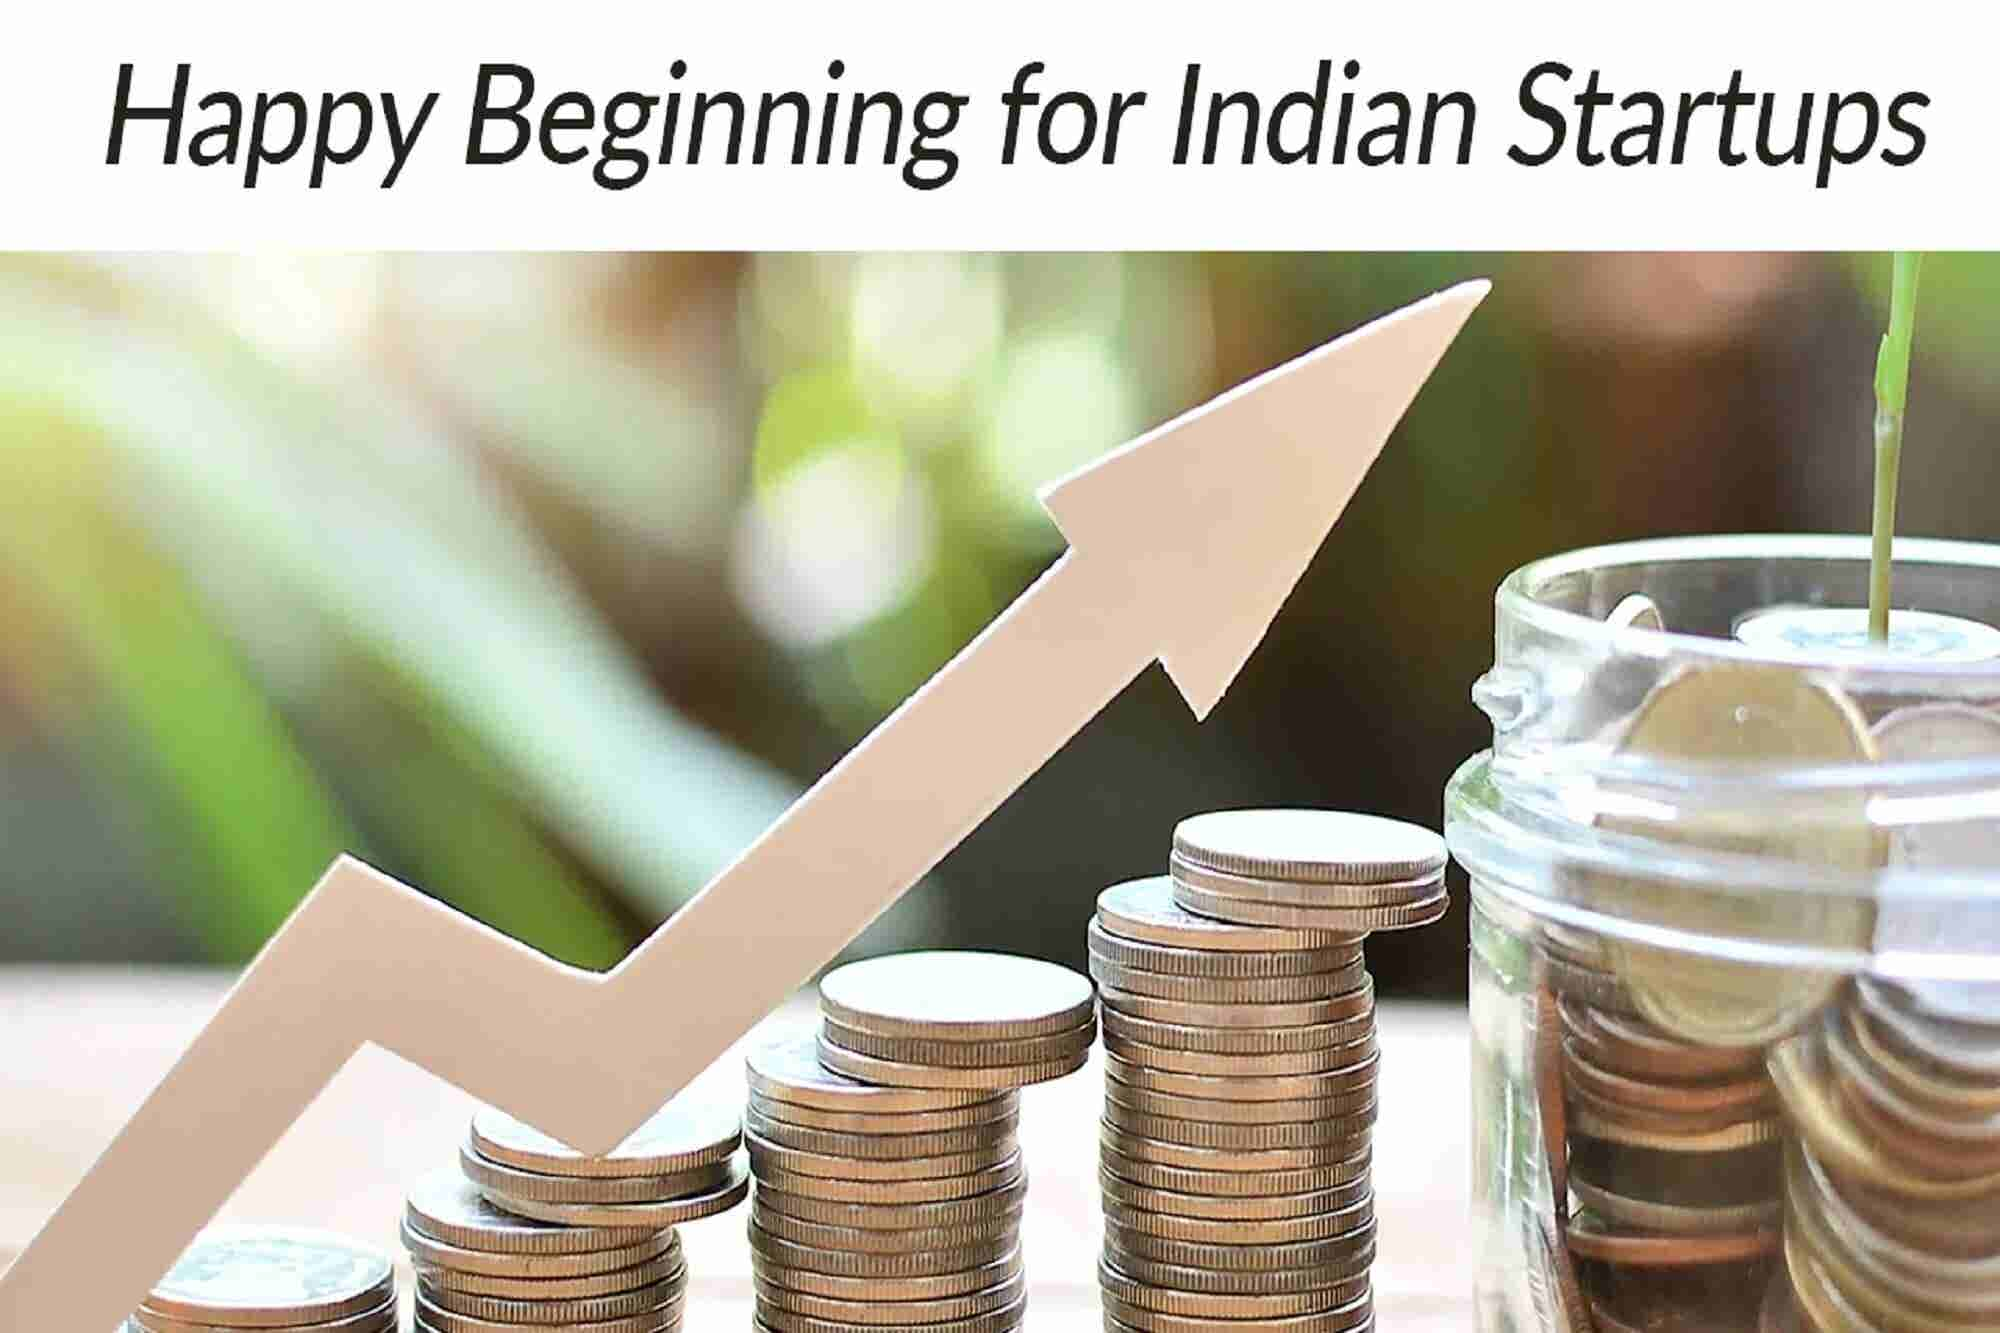 Week Wrap Up: 2019 Starts on a Good Note for Indian Startups